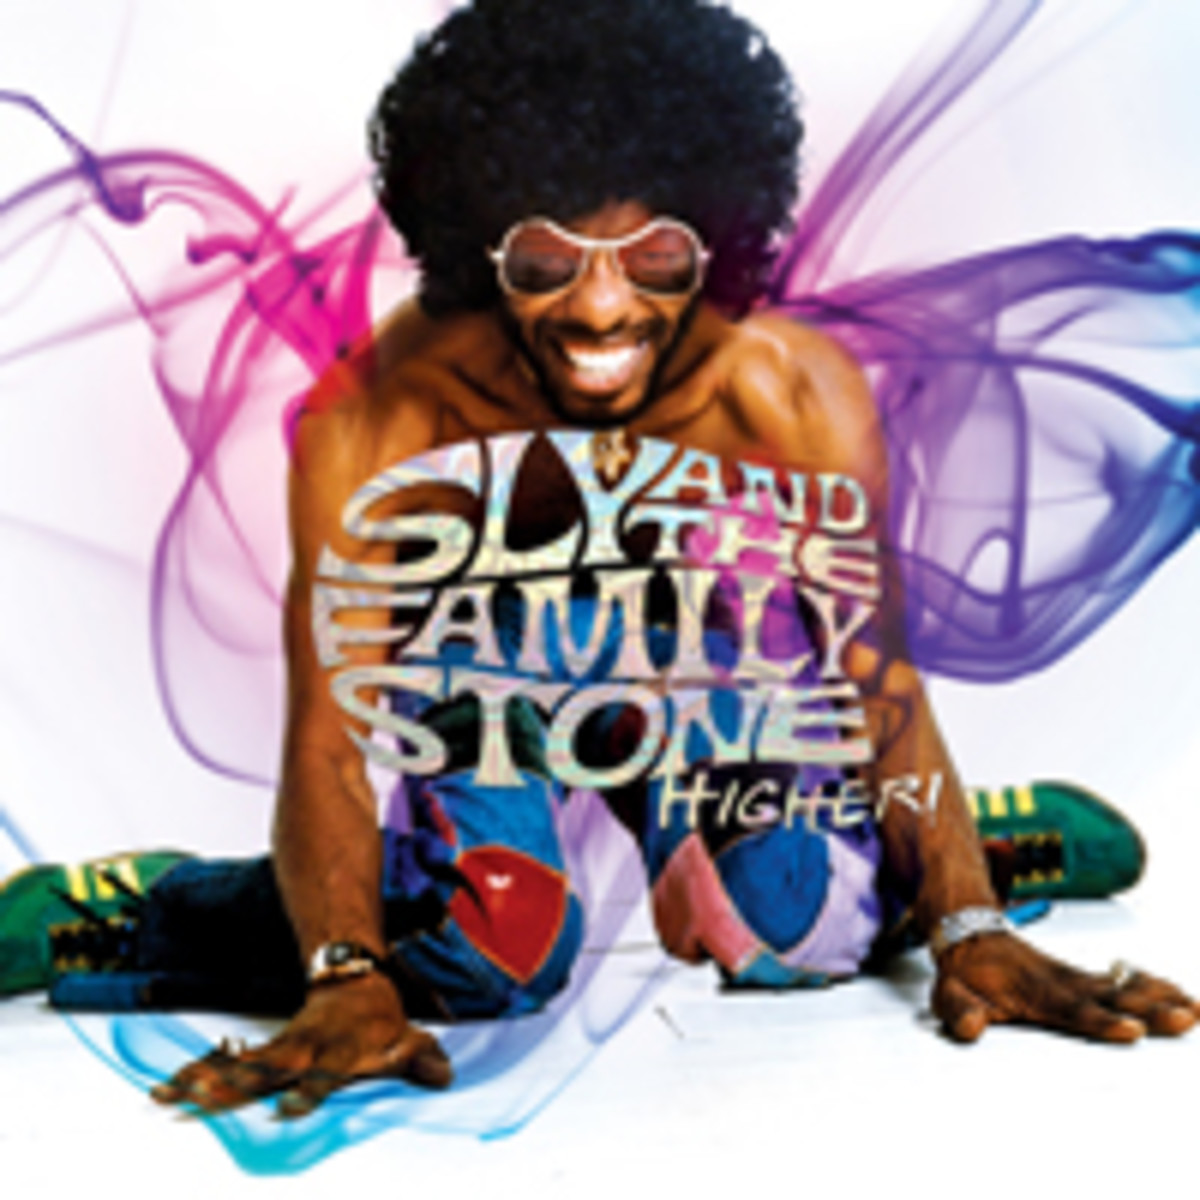 Sly and the Family Stone Higher